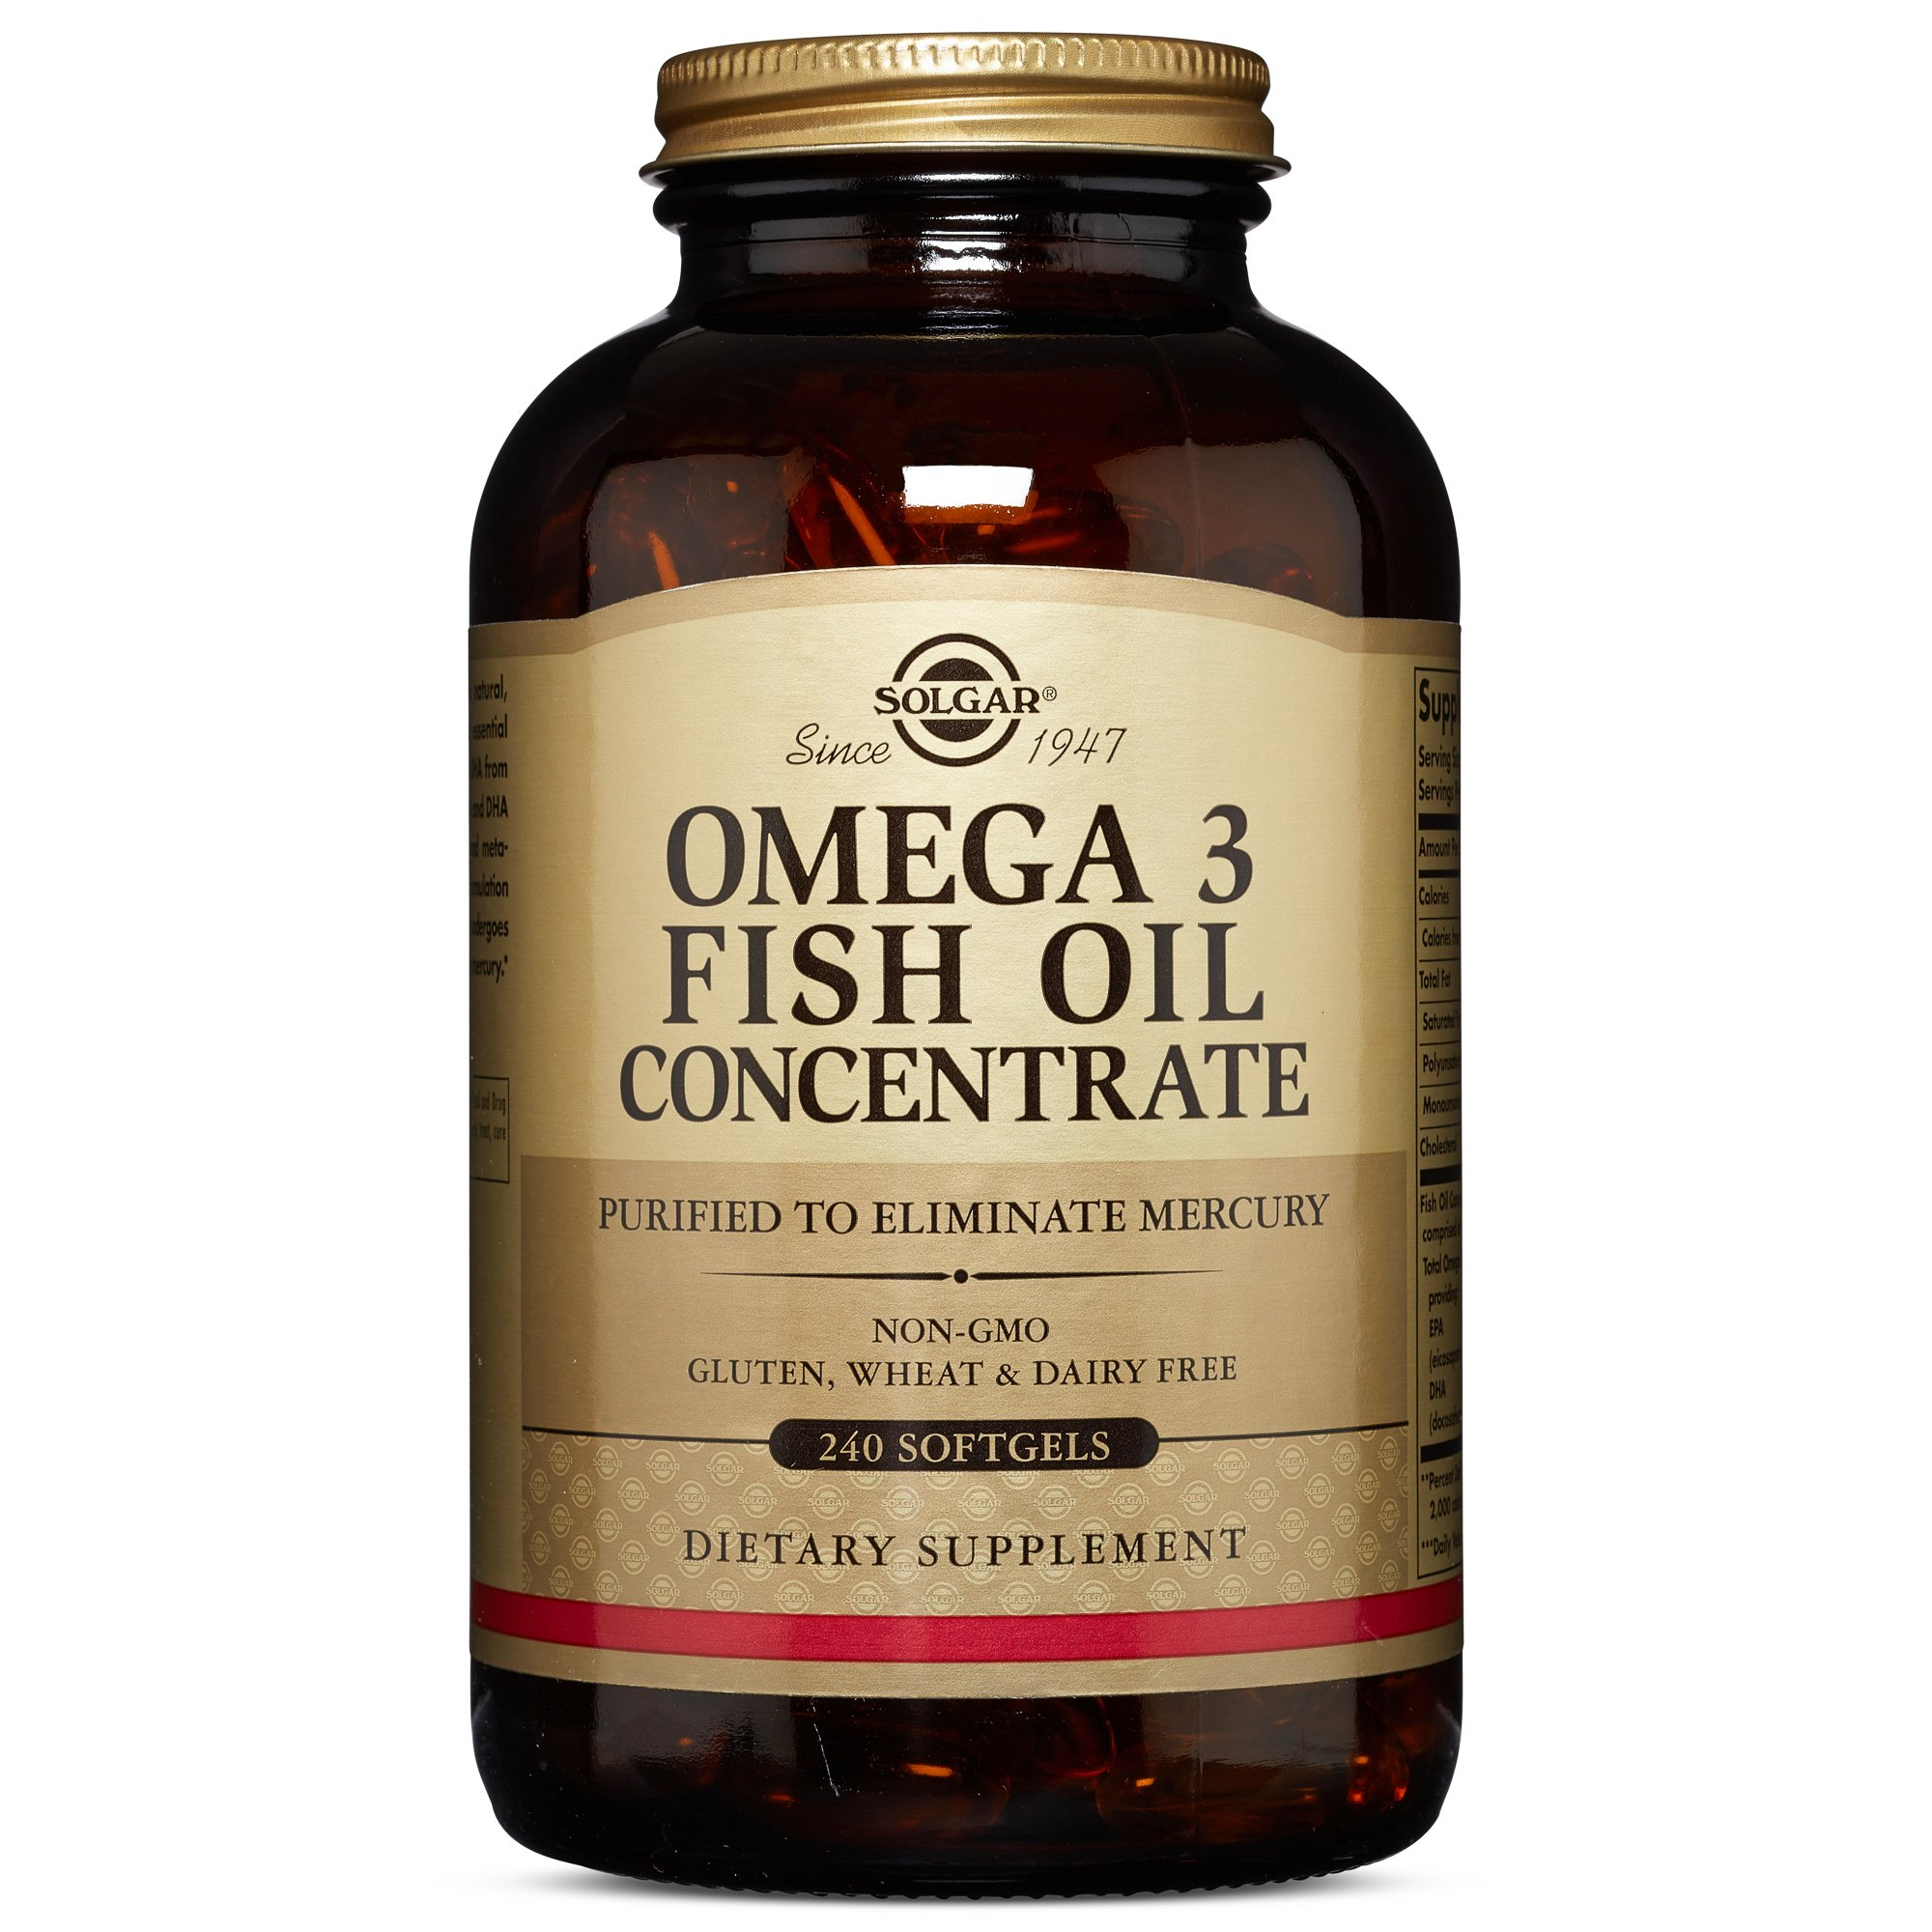 Solgar - Omega-3 Fish Oil Concentrate, 240 Softgels by Solgar